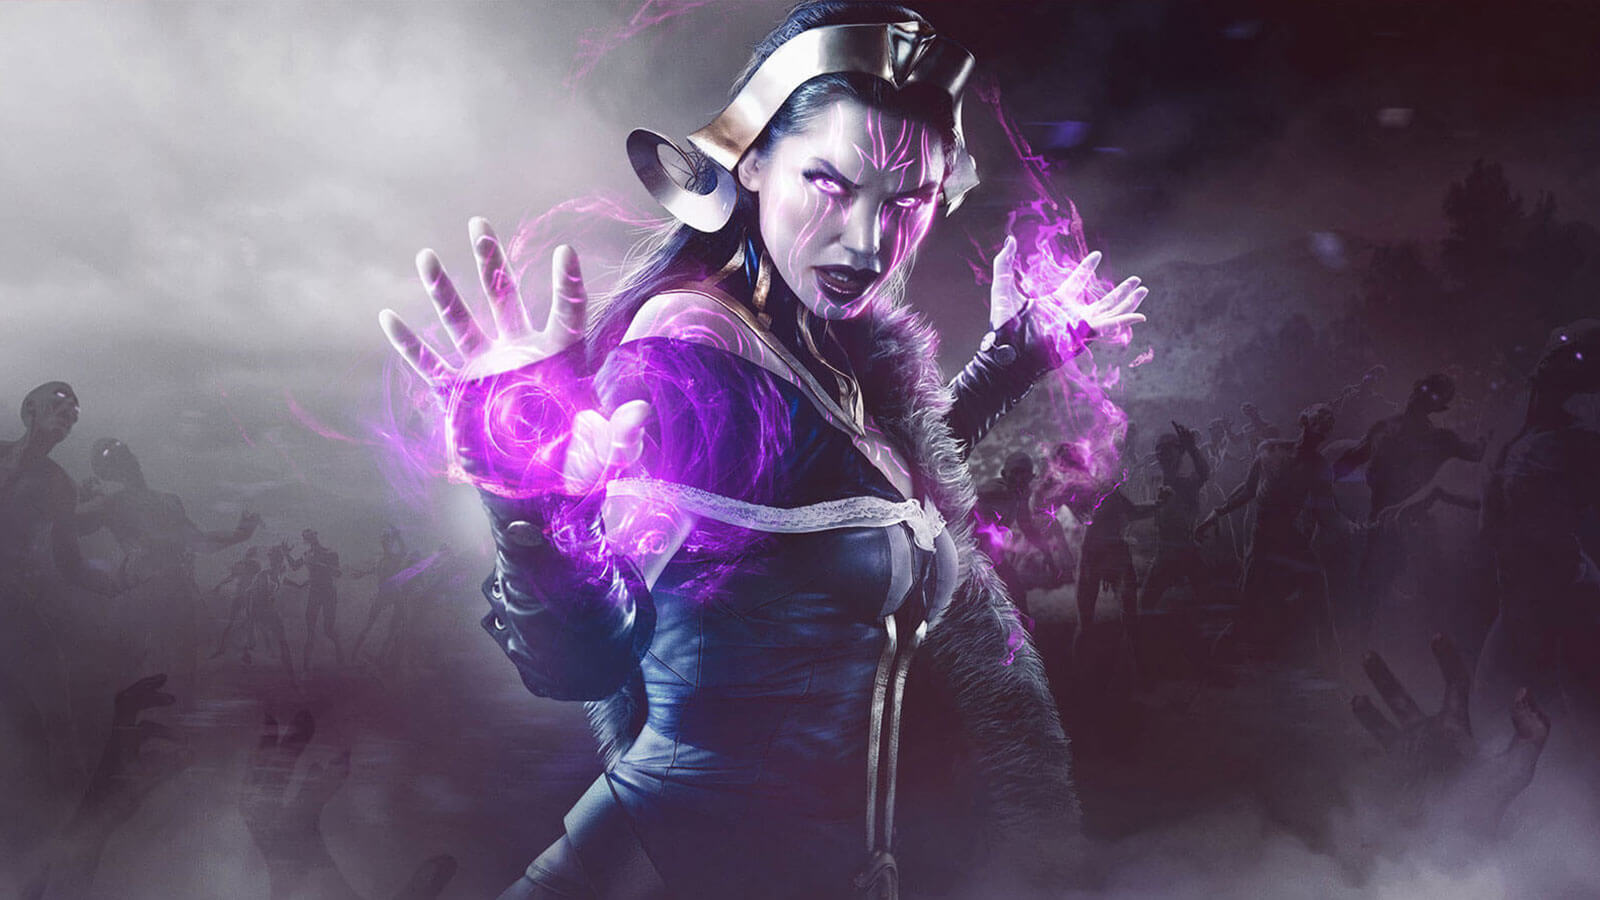 A dark, desaturated image of a necromancer surrounded by zombies as she summons magical, purple energy from her hands.